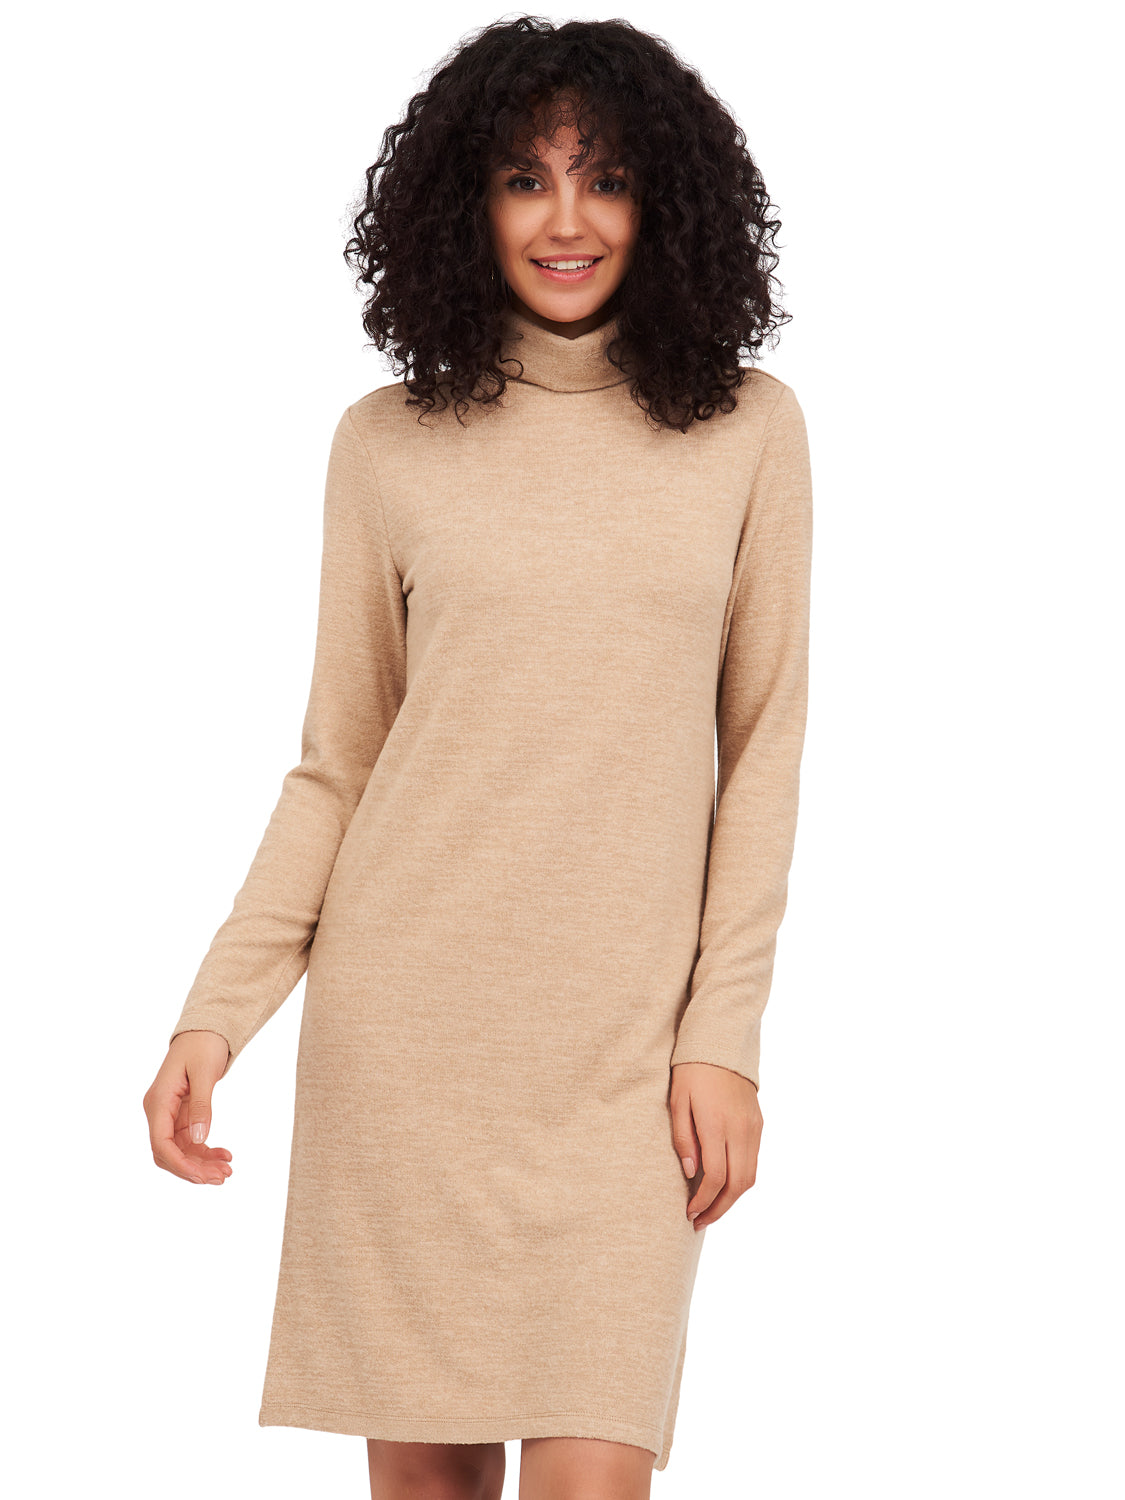 Long Sleeve Turtleneck A-Line Dress